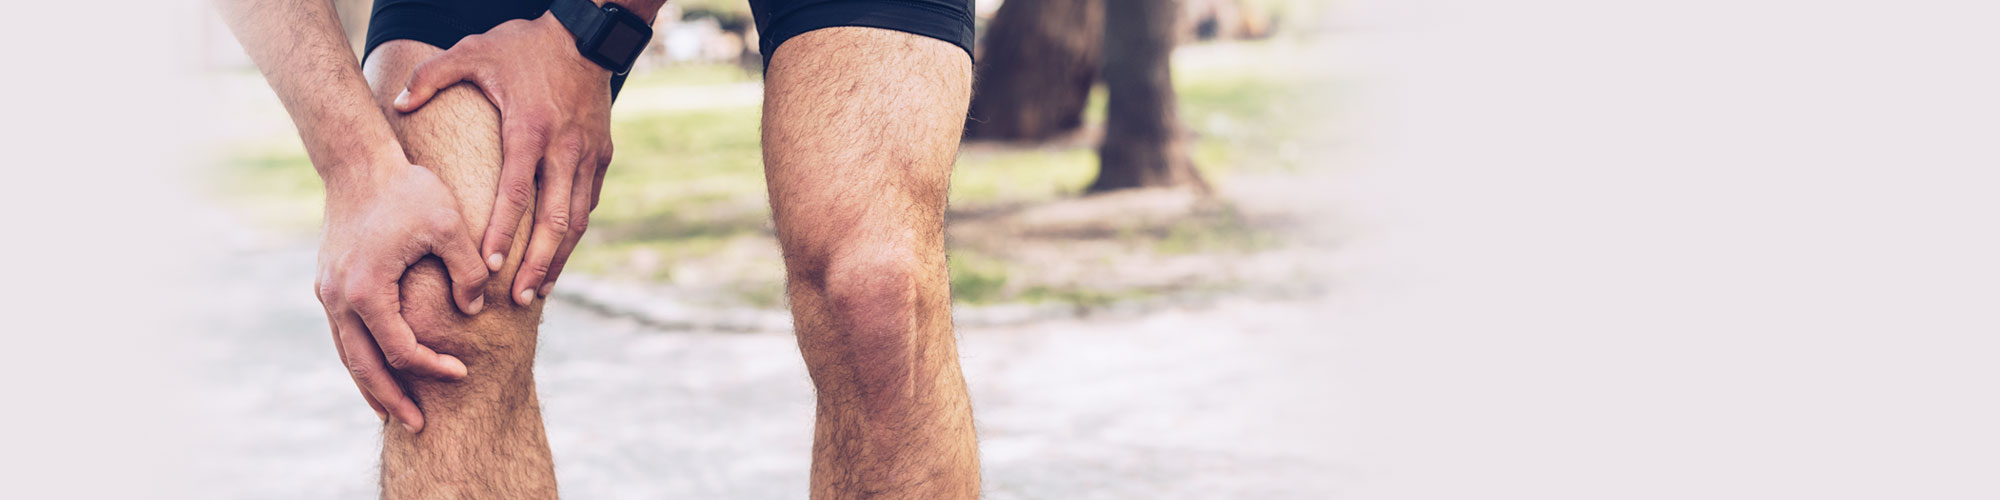 Knee Pain Treatment In Delhi, Knee Pain Specialist in Delhi